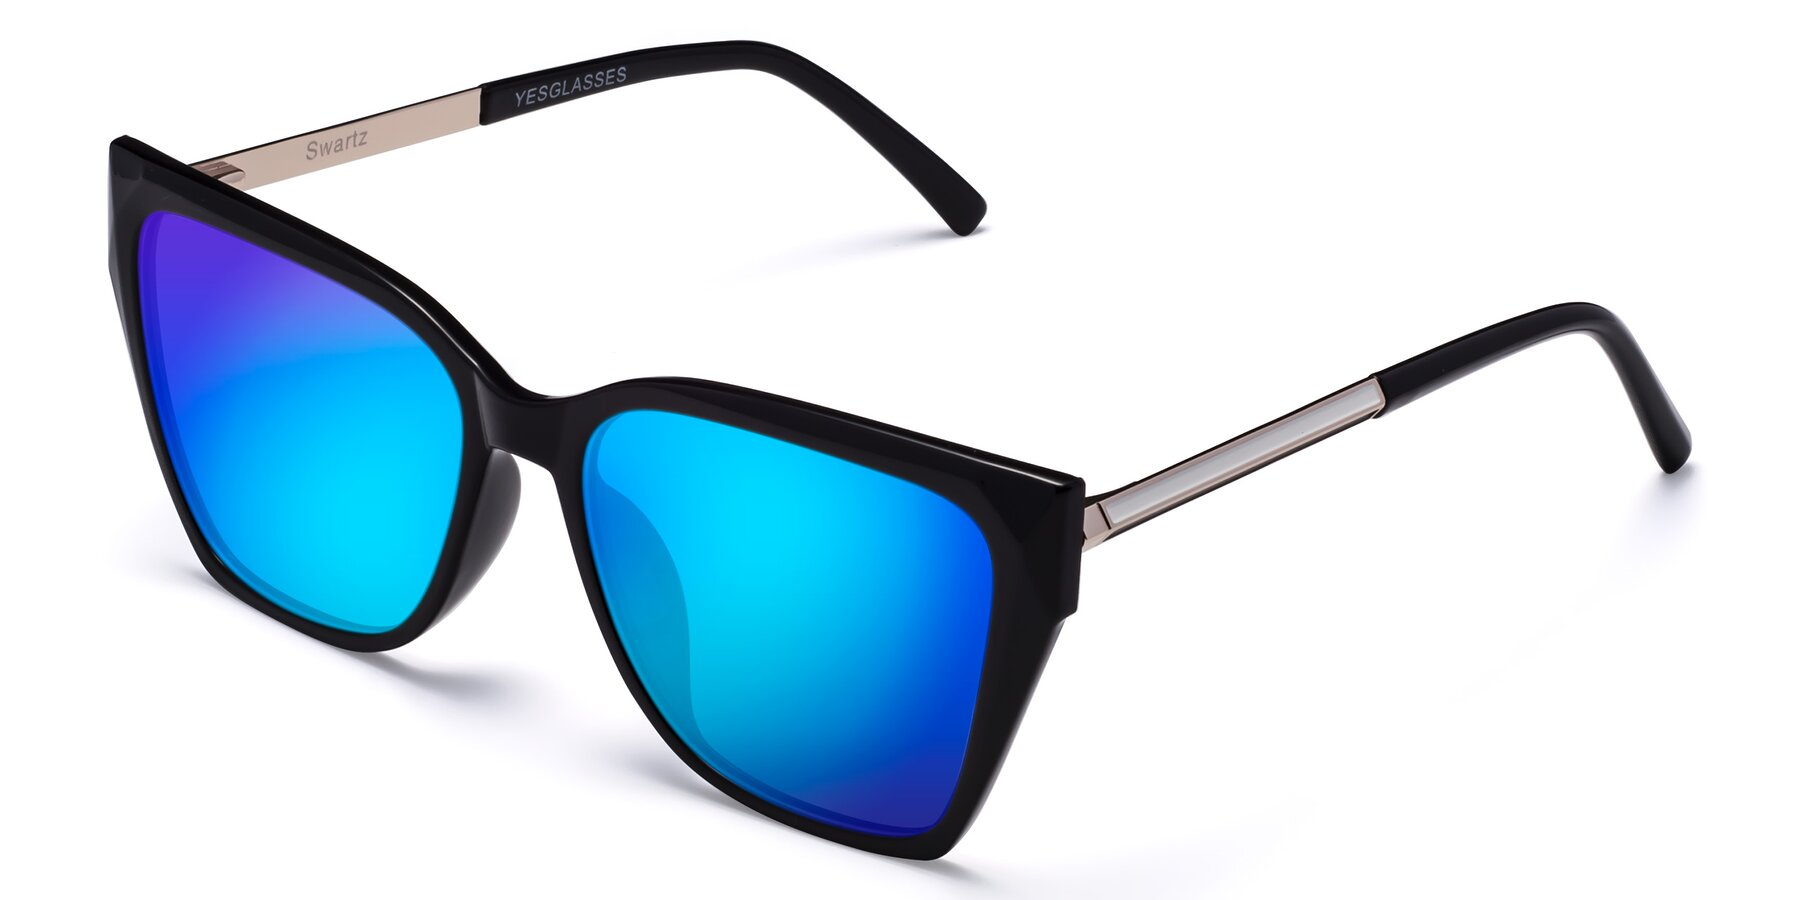 Angle of Swartz in Black with Blue Mirrored Lenses